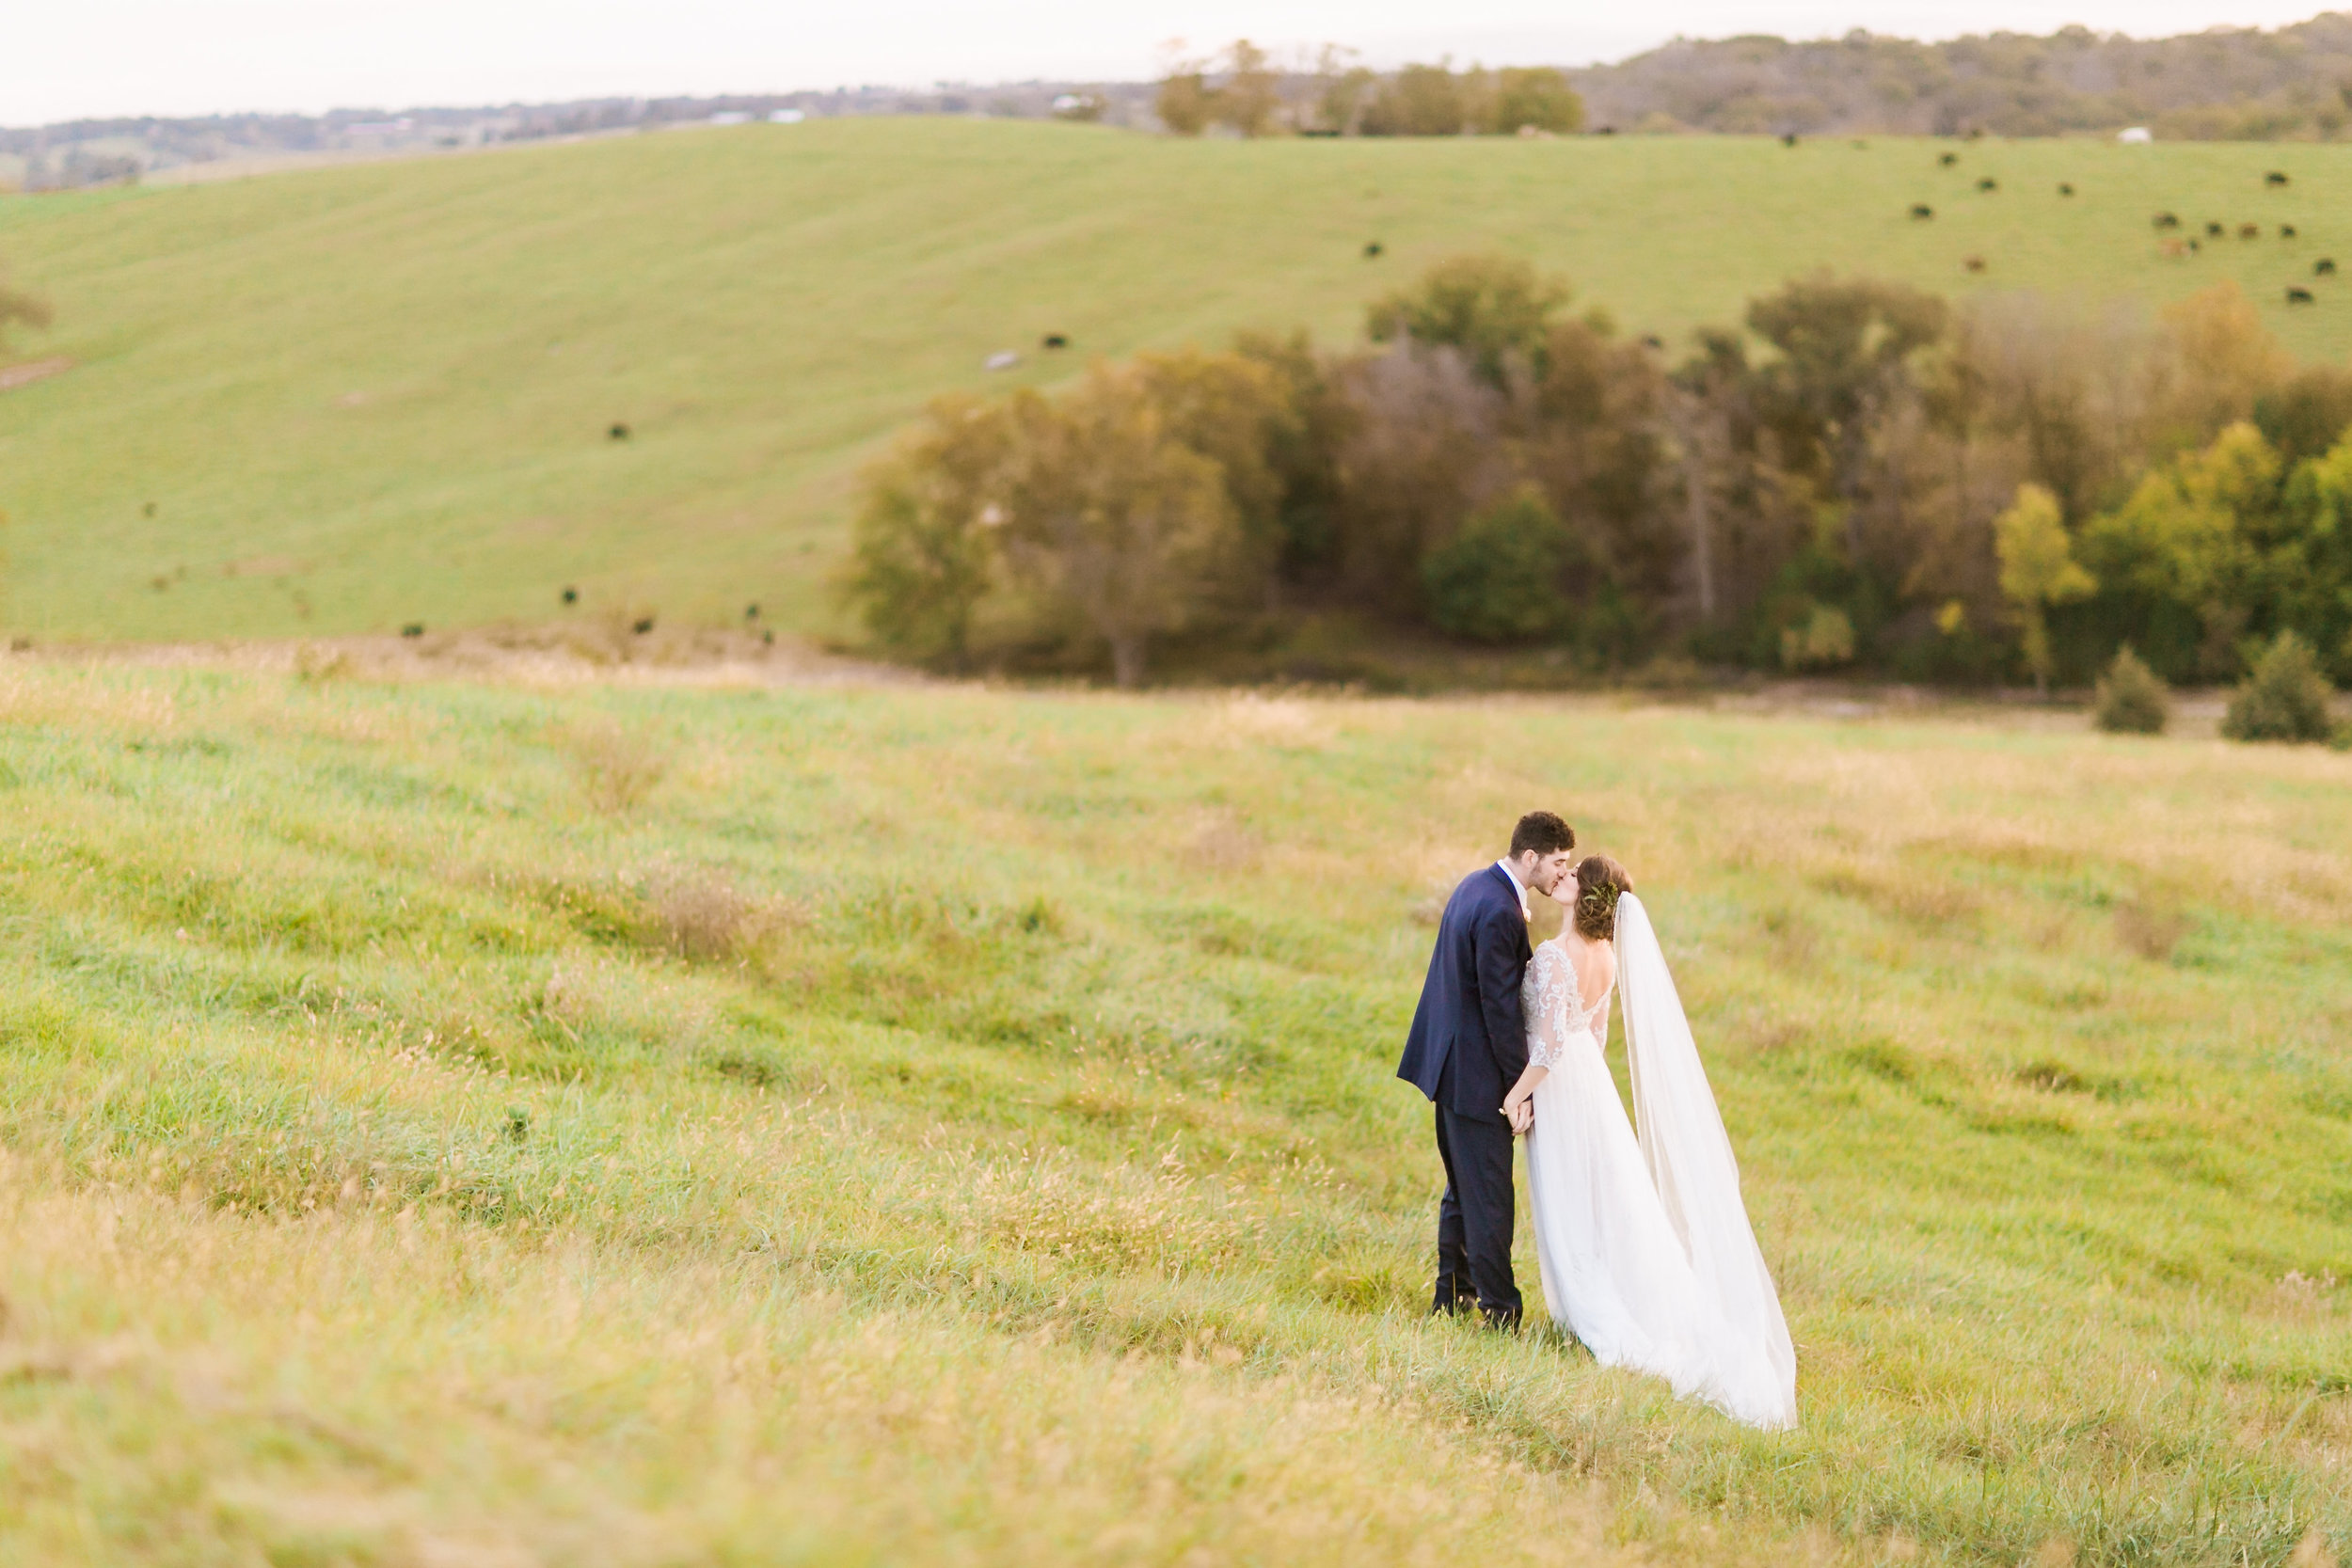 MissouriRusticWedding_StLouisWeddingPhotographer_AliciaDan_CatherineRhodesPhotography-4174-Edit.jpg